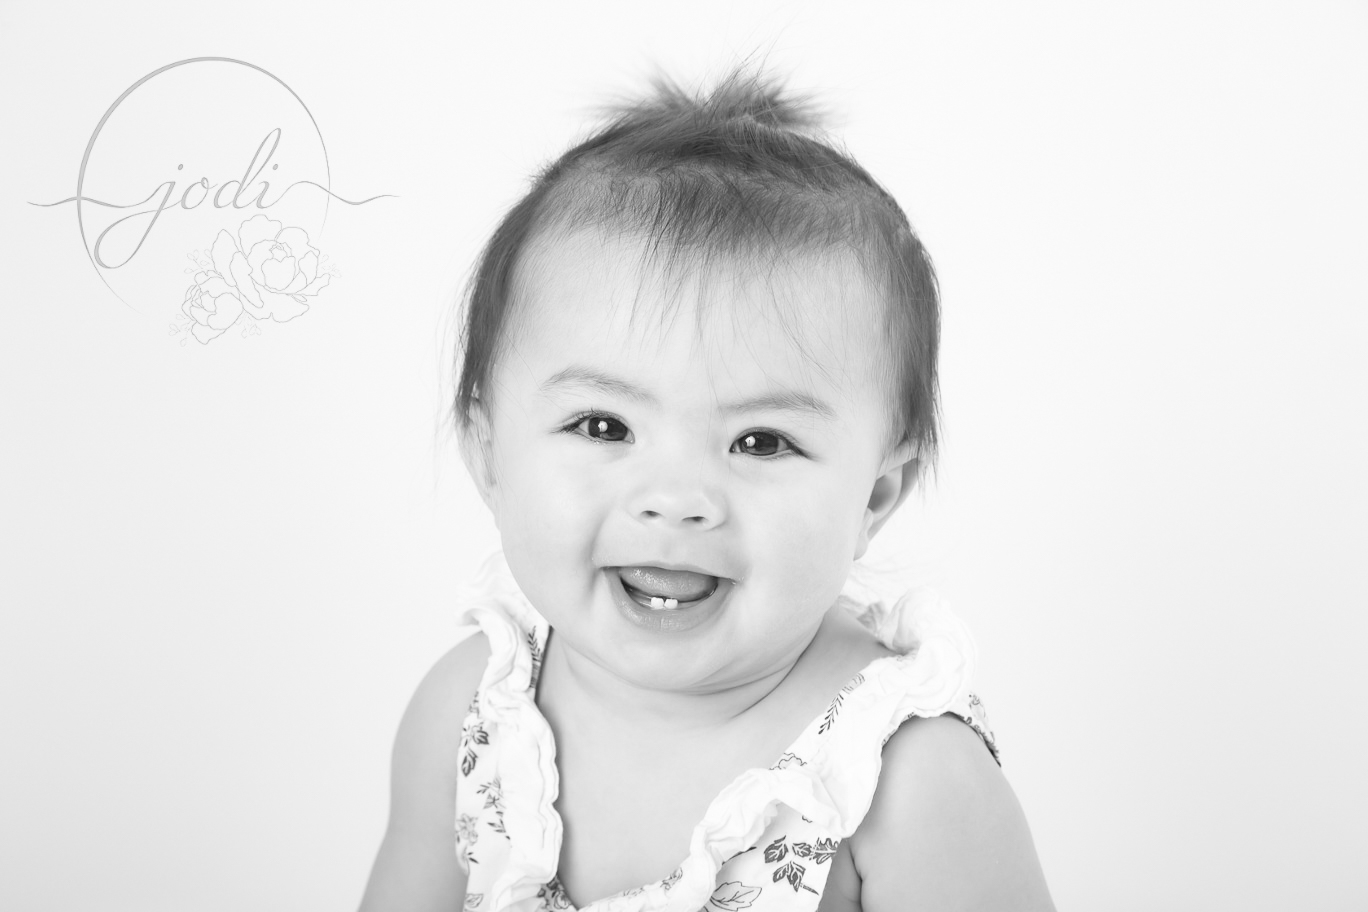 Sharing blog posts of little smiling face by Calgary Photographers